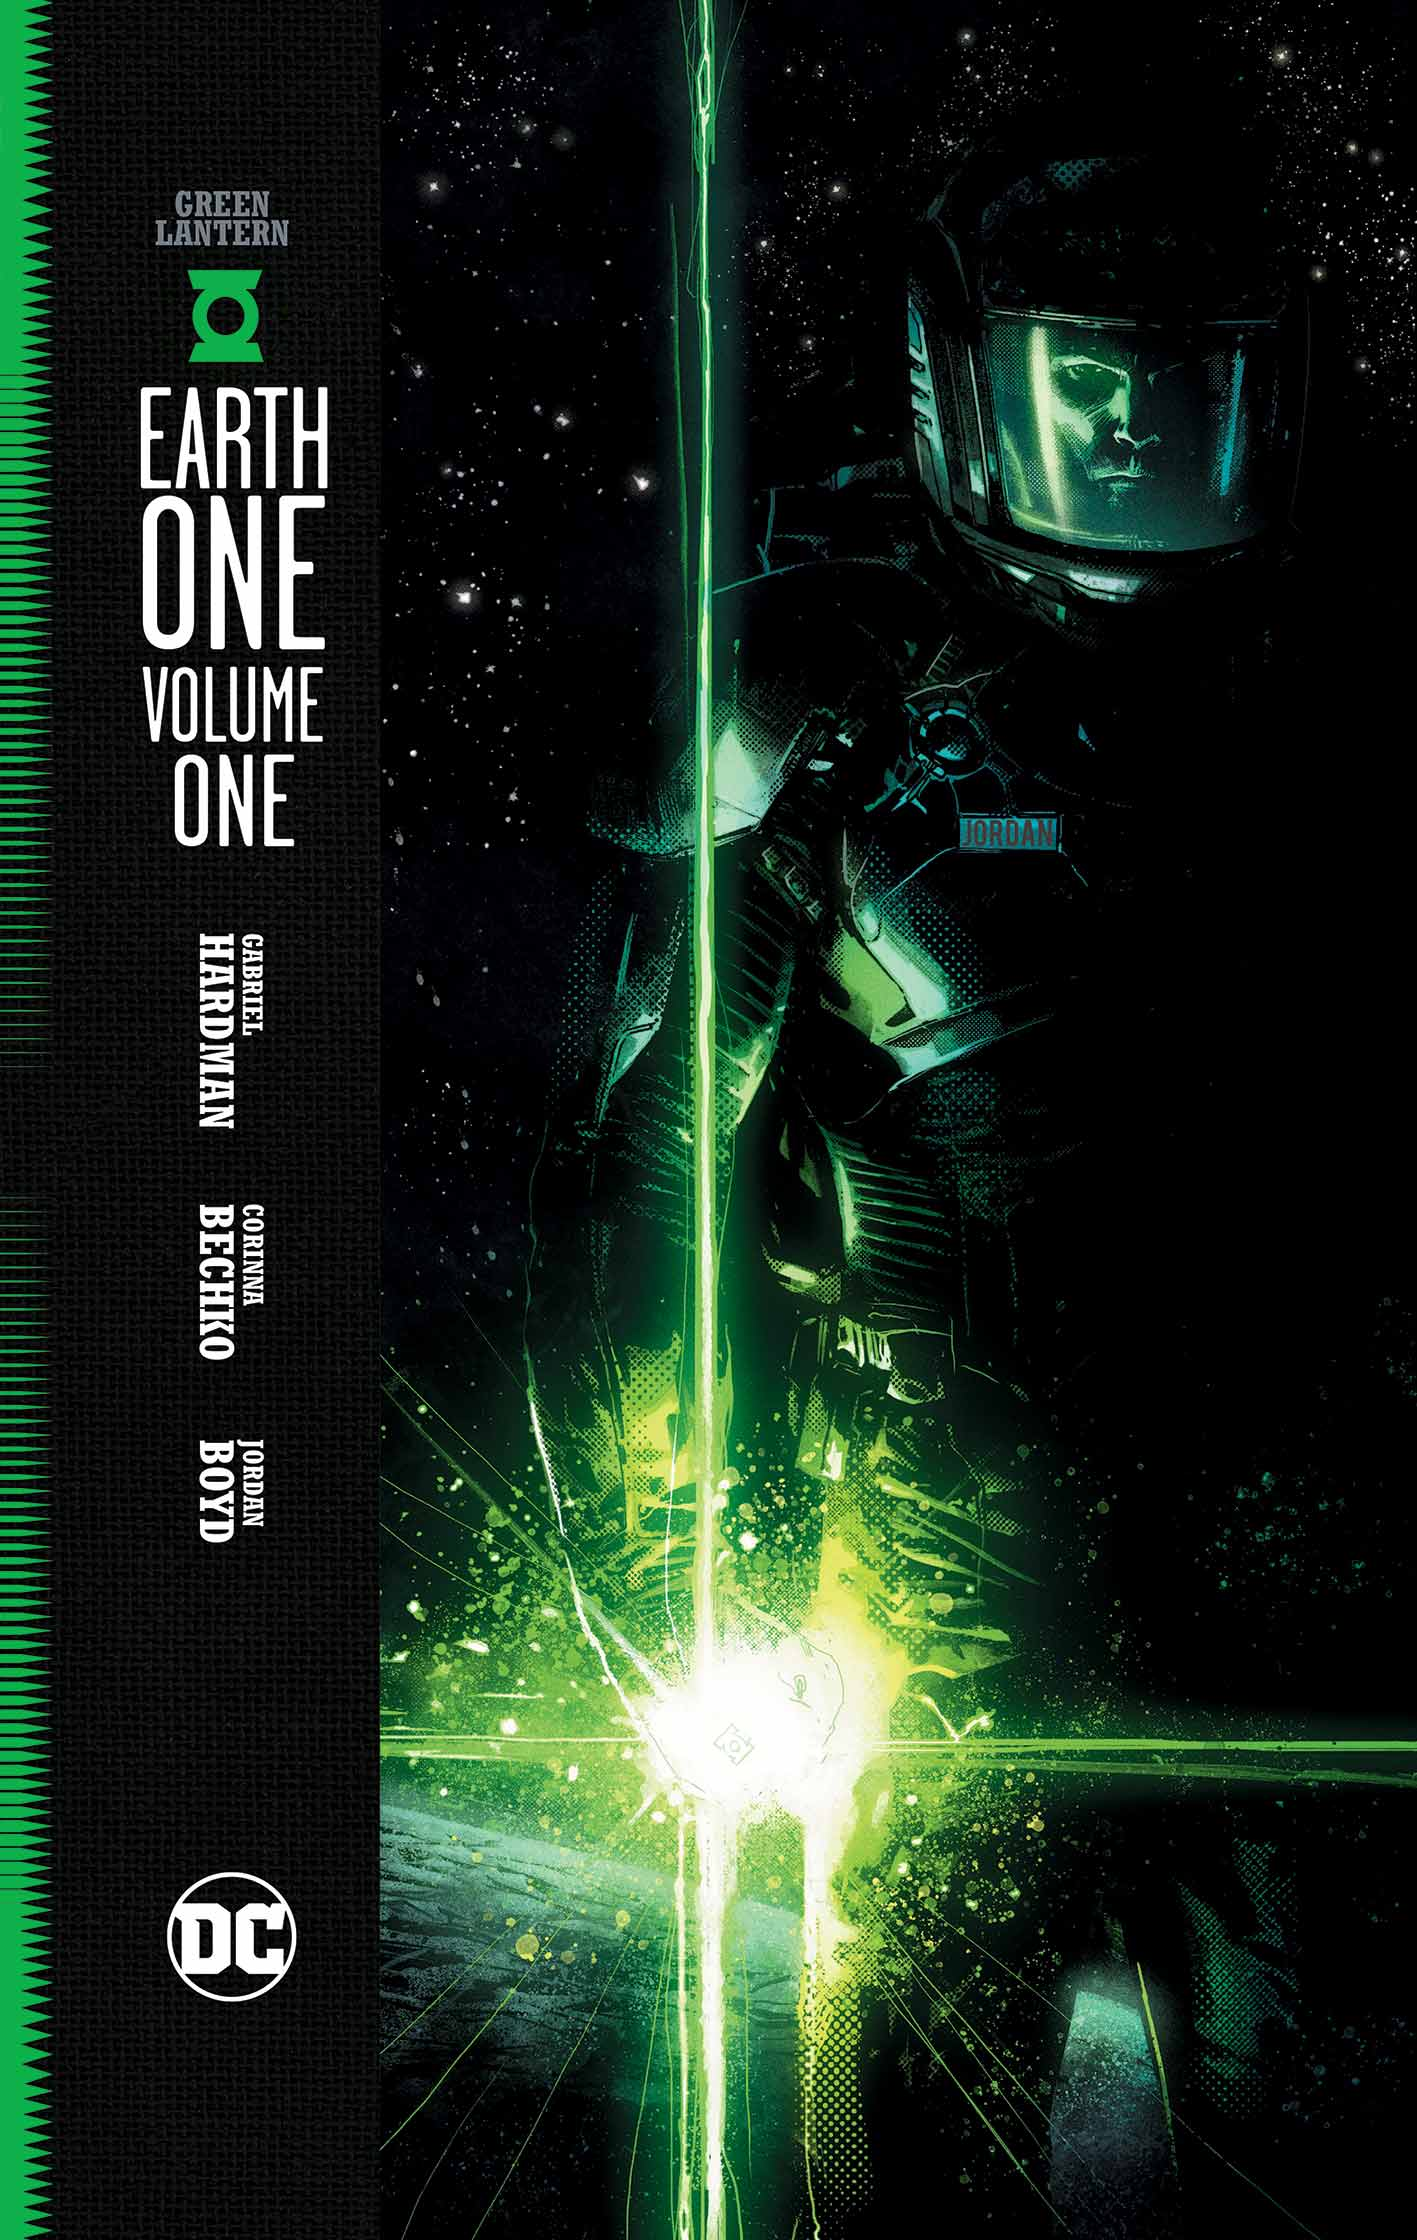 Image result for green lantern earth one book cover